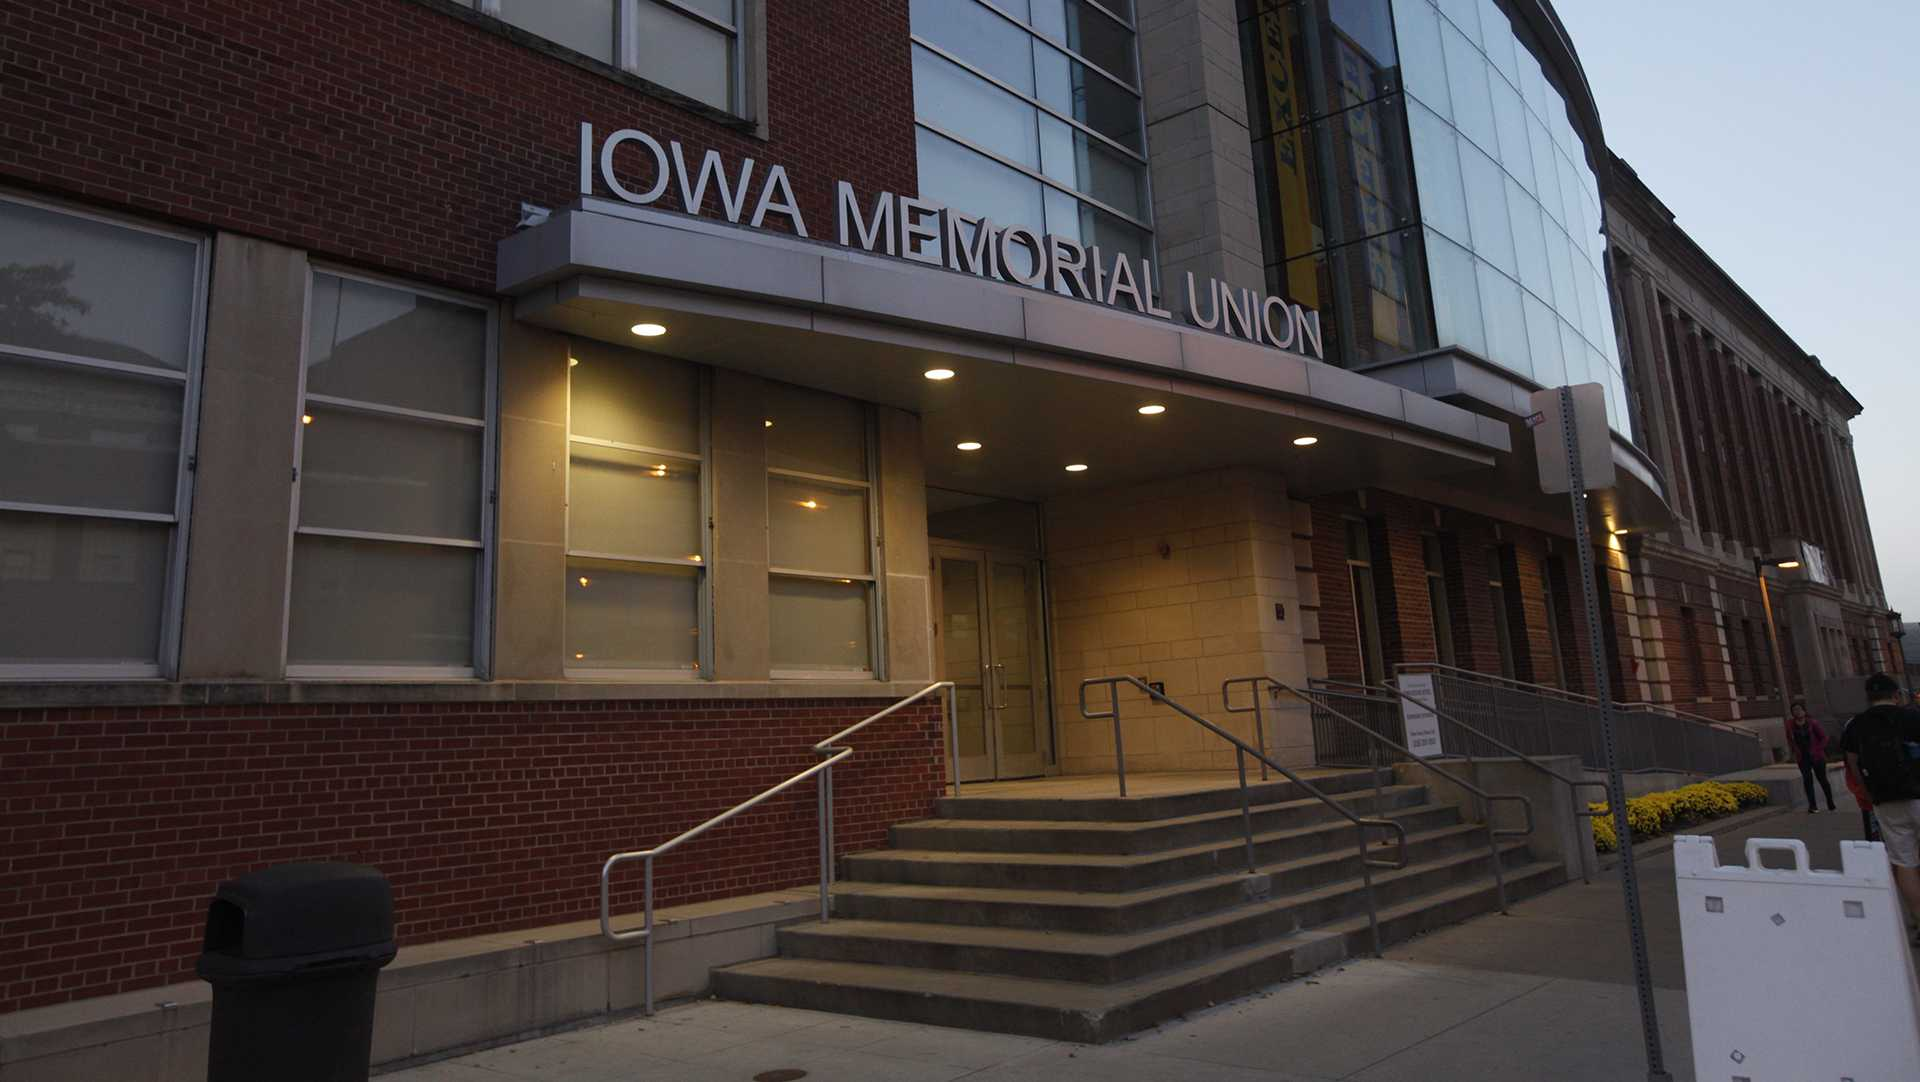 The Iowa Memorial Union glows in the evening Monday, Oct. 9th 2017.